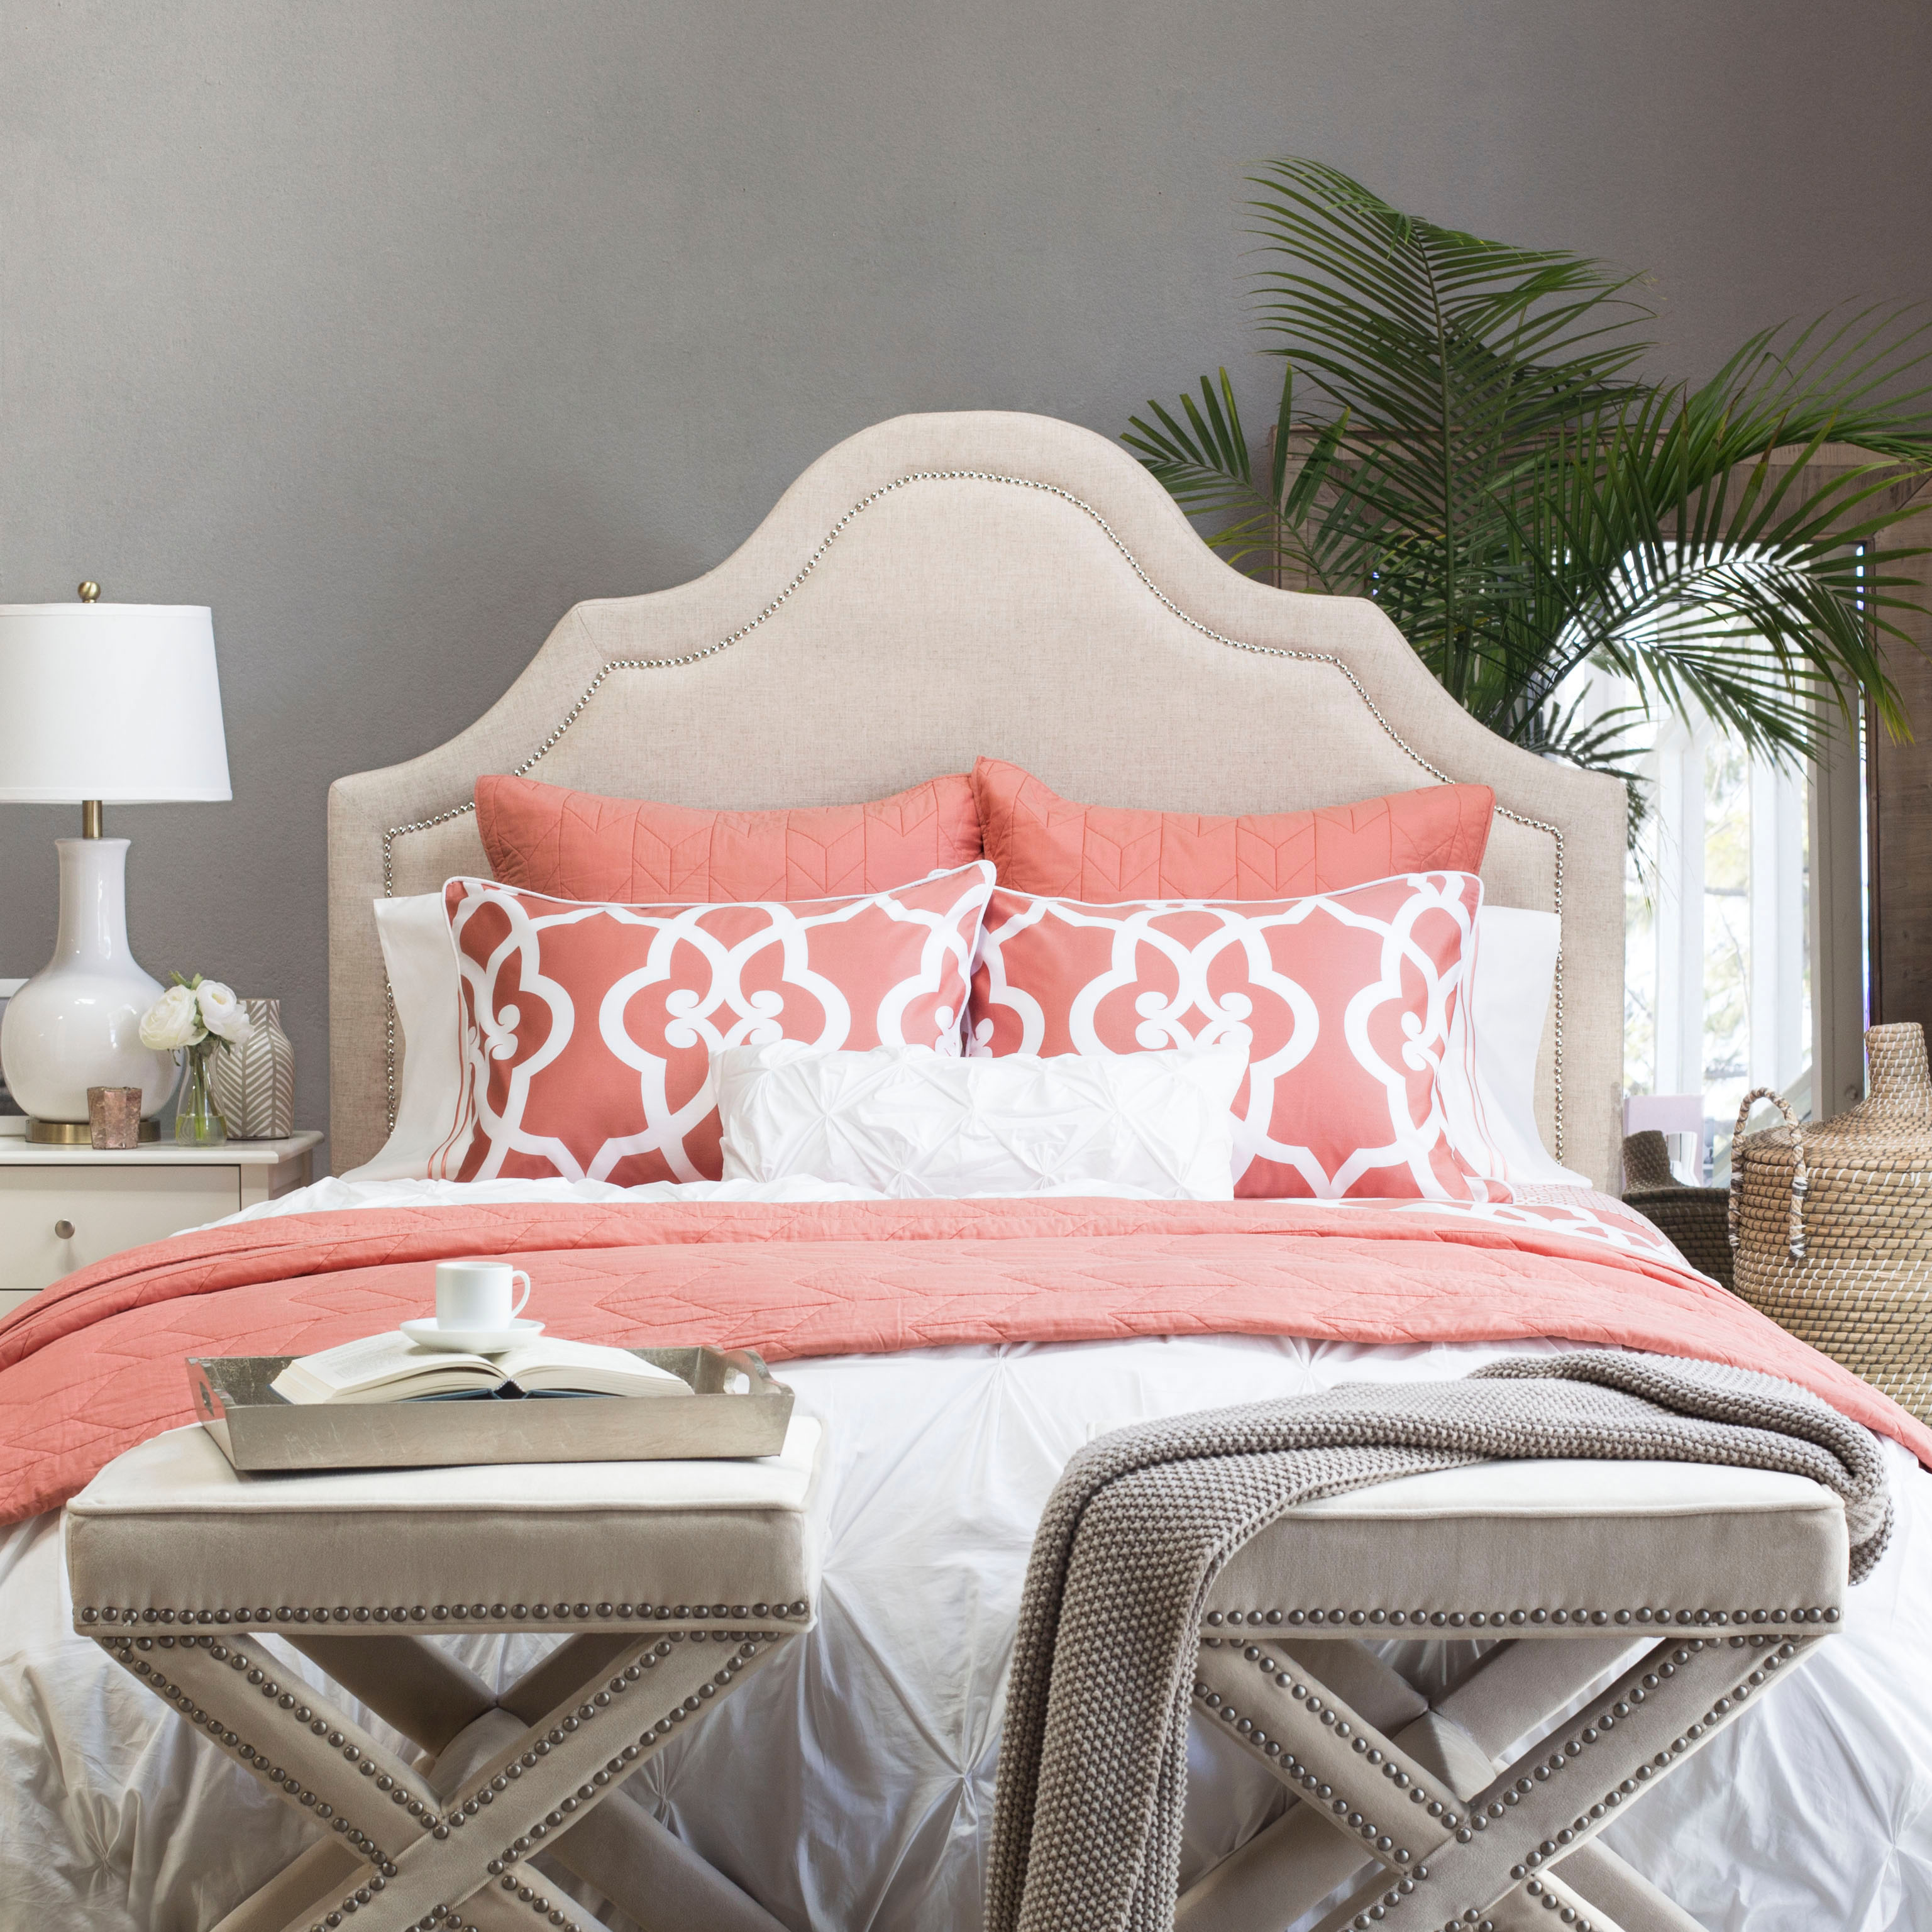 Online bedding companies are popping up — which 20 is best for you